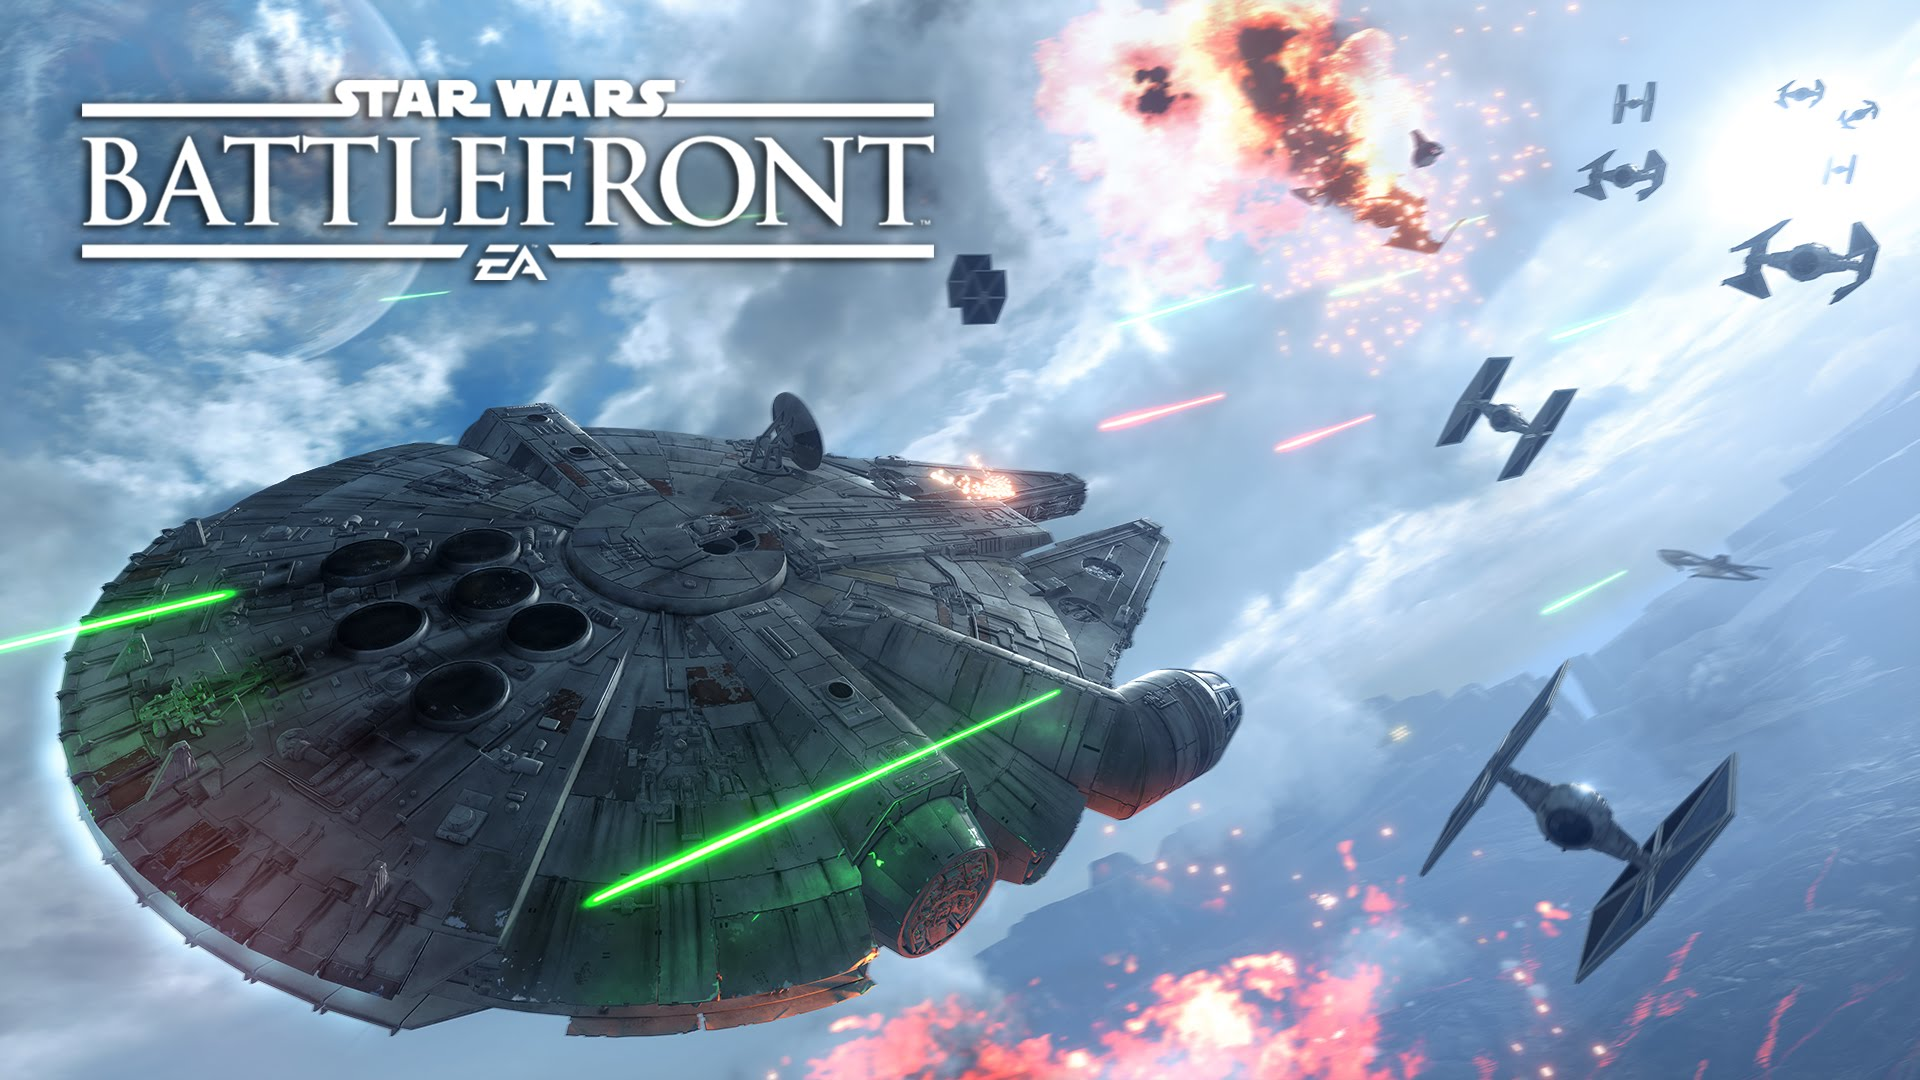 Star Wars Battlefront: Fighter Squadron Mode Gameplay Trailer - YouTube